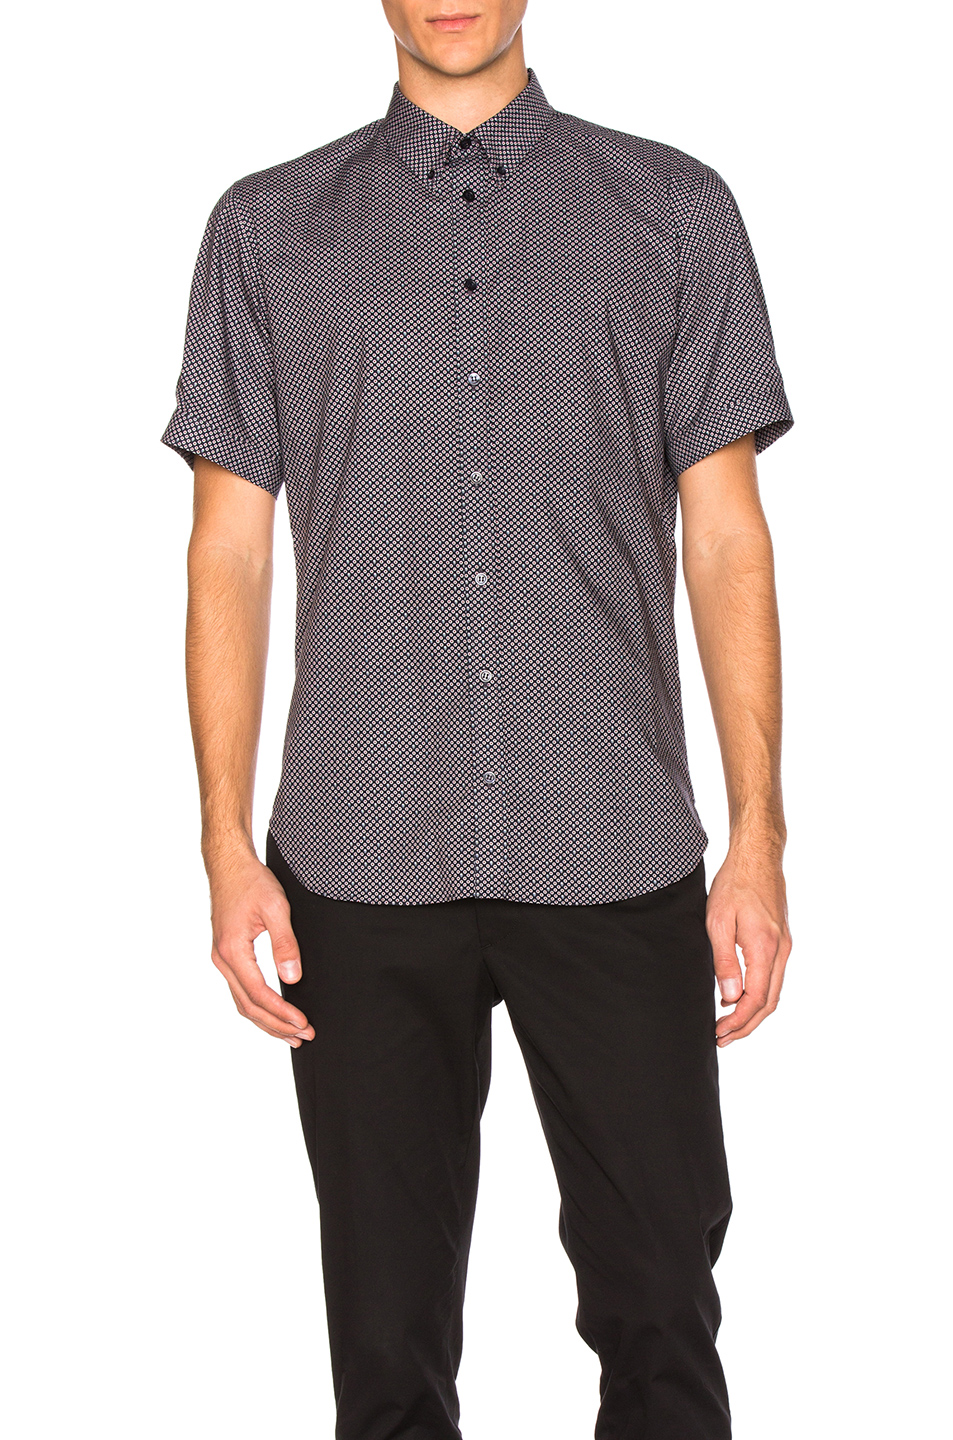 Photo of Alexander McQueen Short Sleeve Shirt in Blue - shop Alexander McQueen menswear